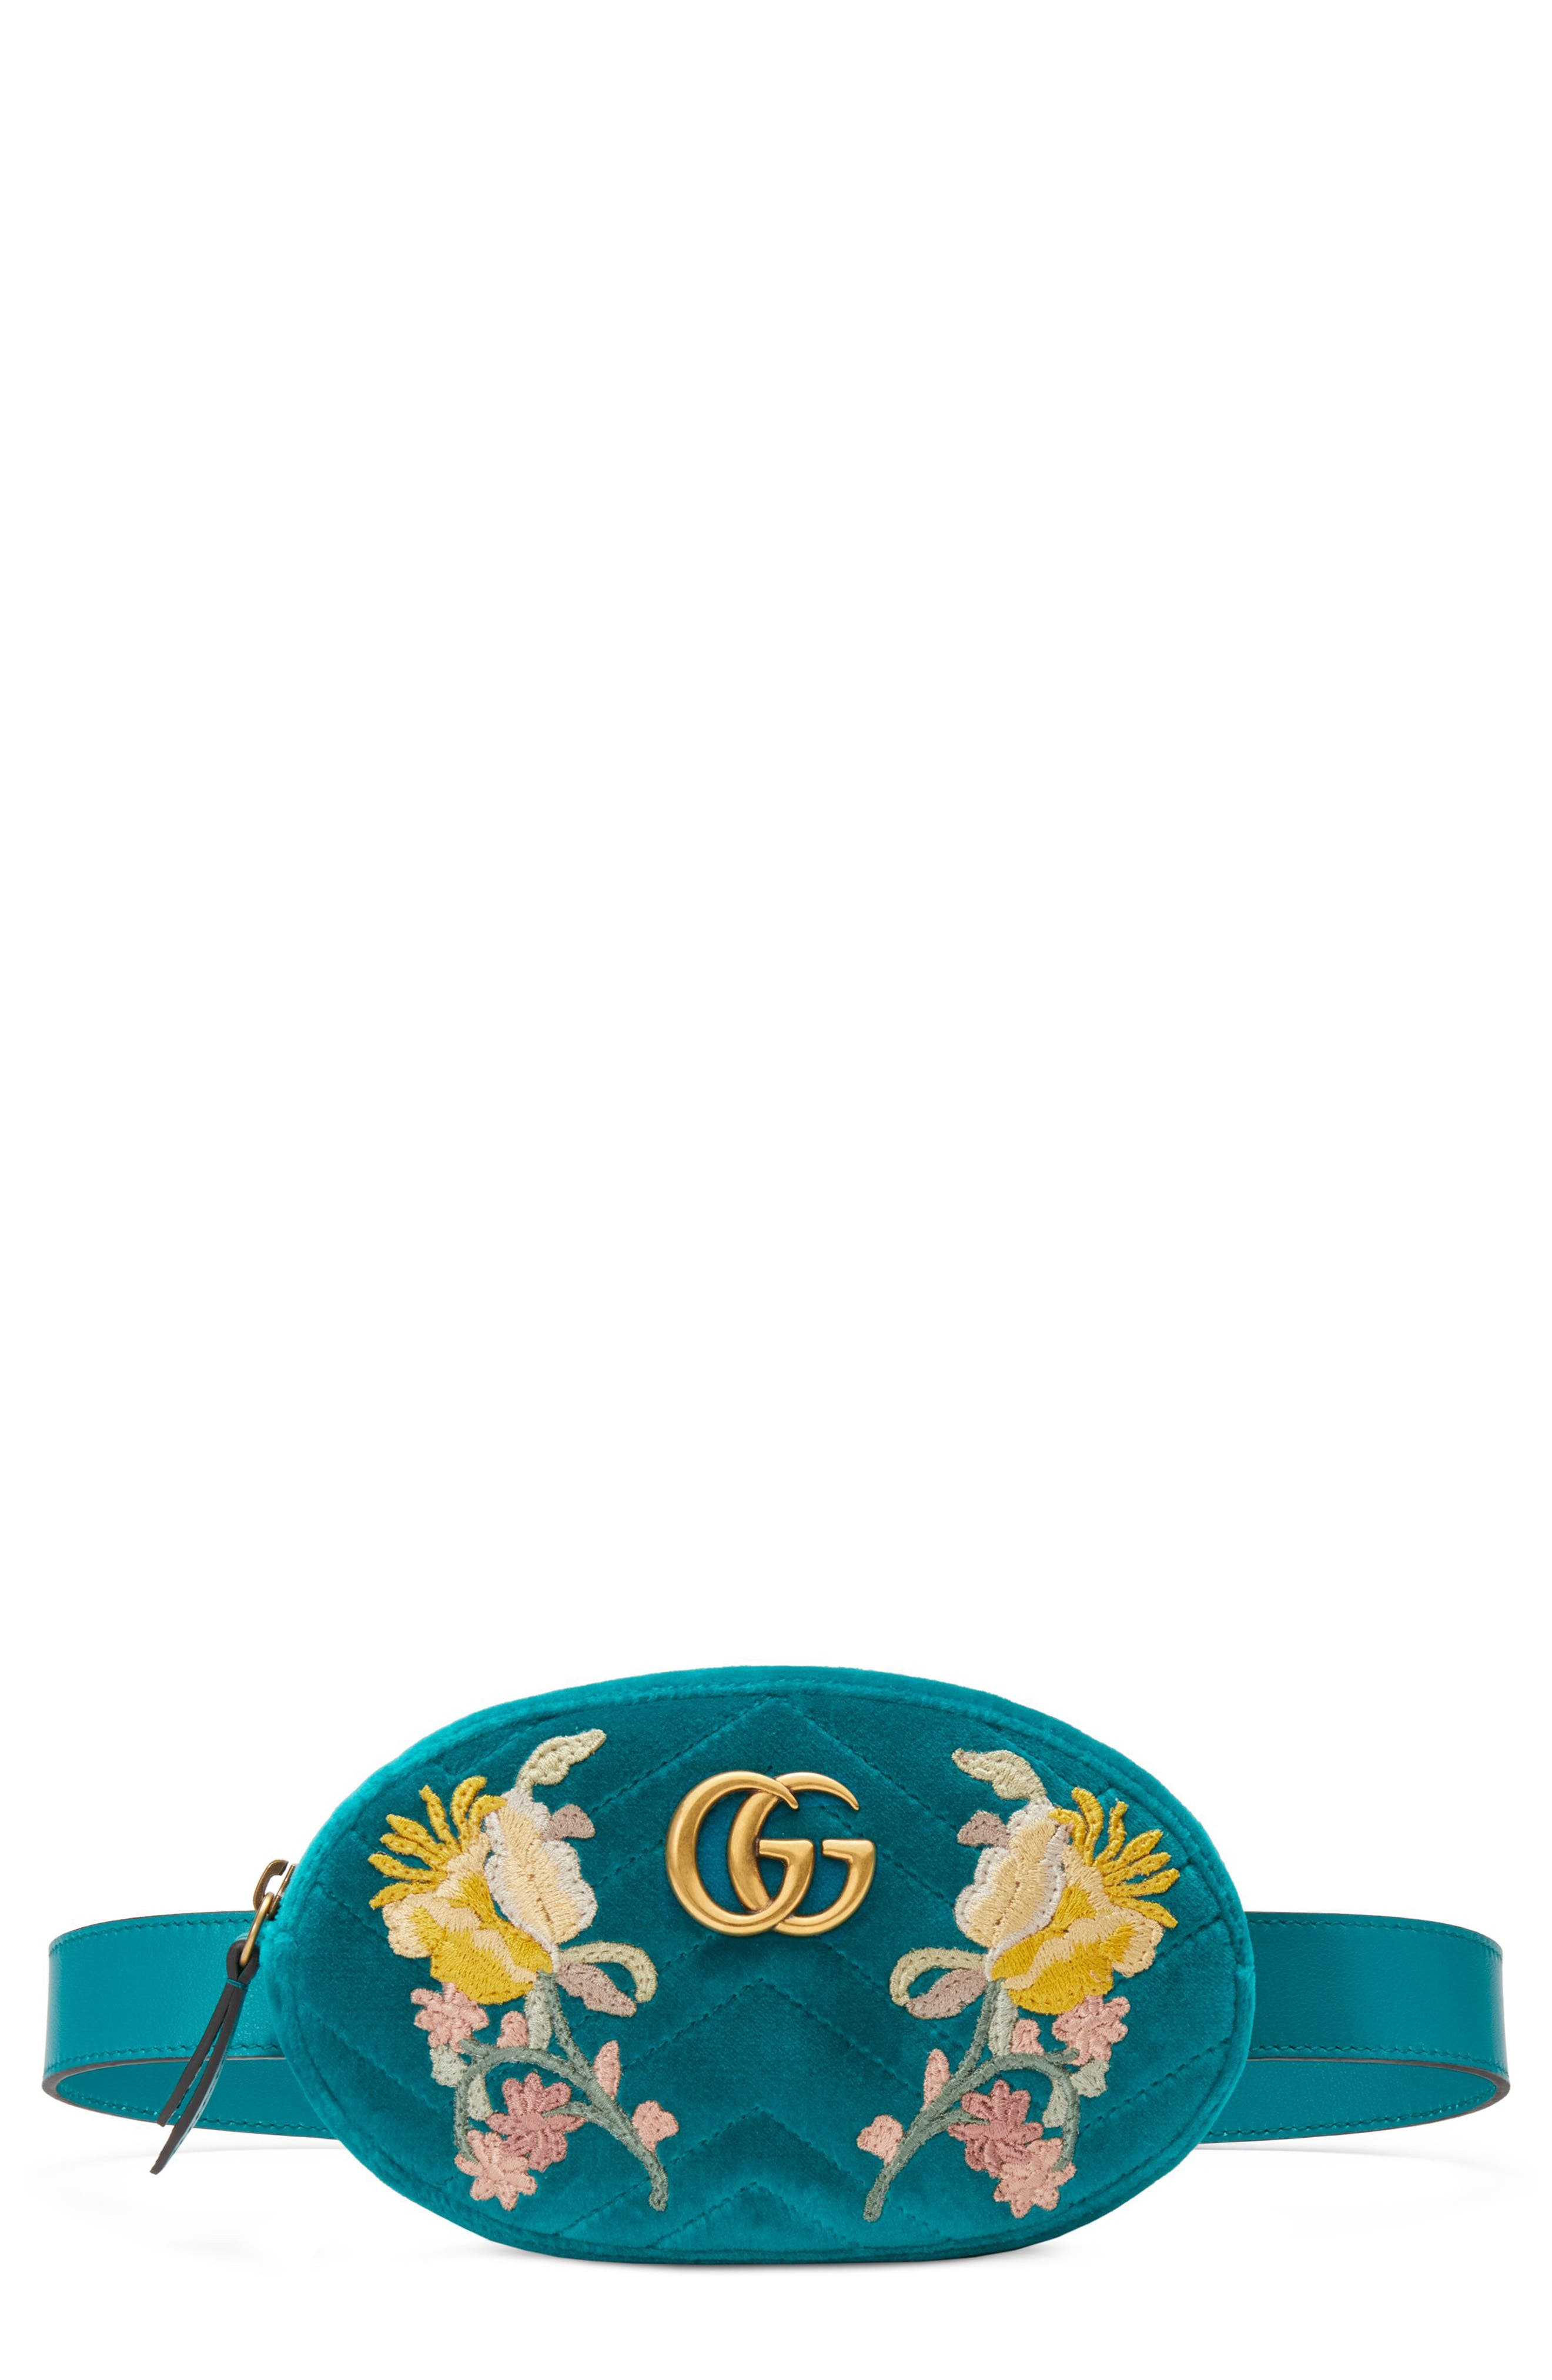 GG Marmont 2.0 Embroidered Velvet Belt Bag,                             Main thumbnail 1, color,                             440